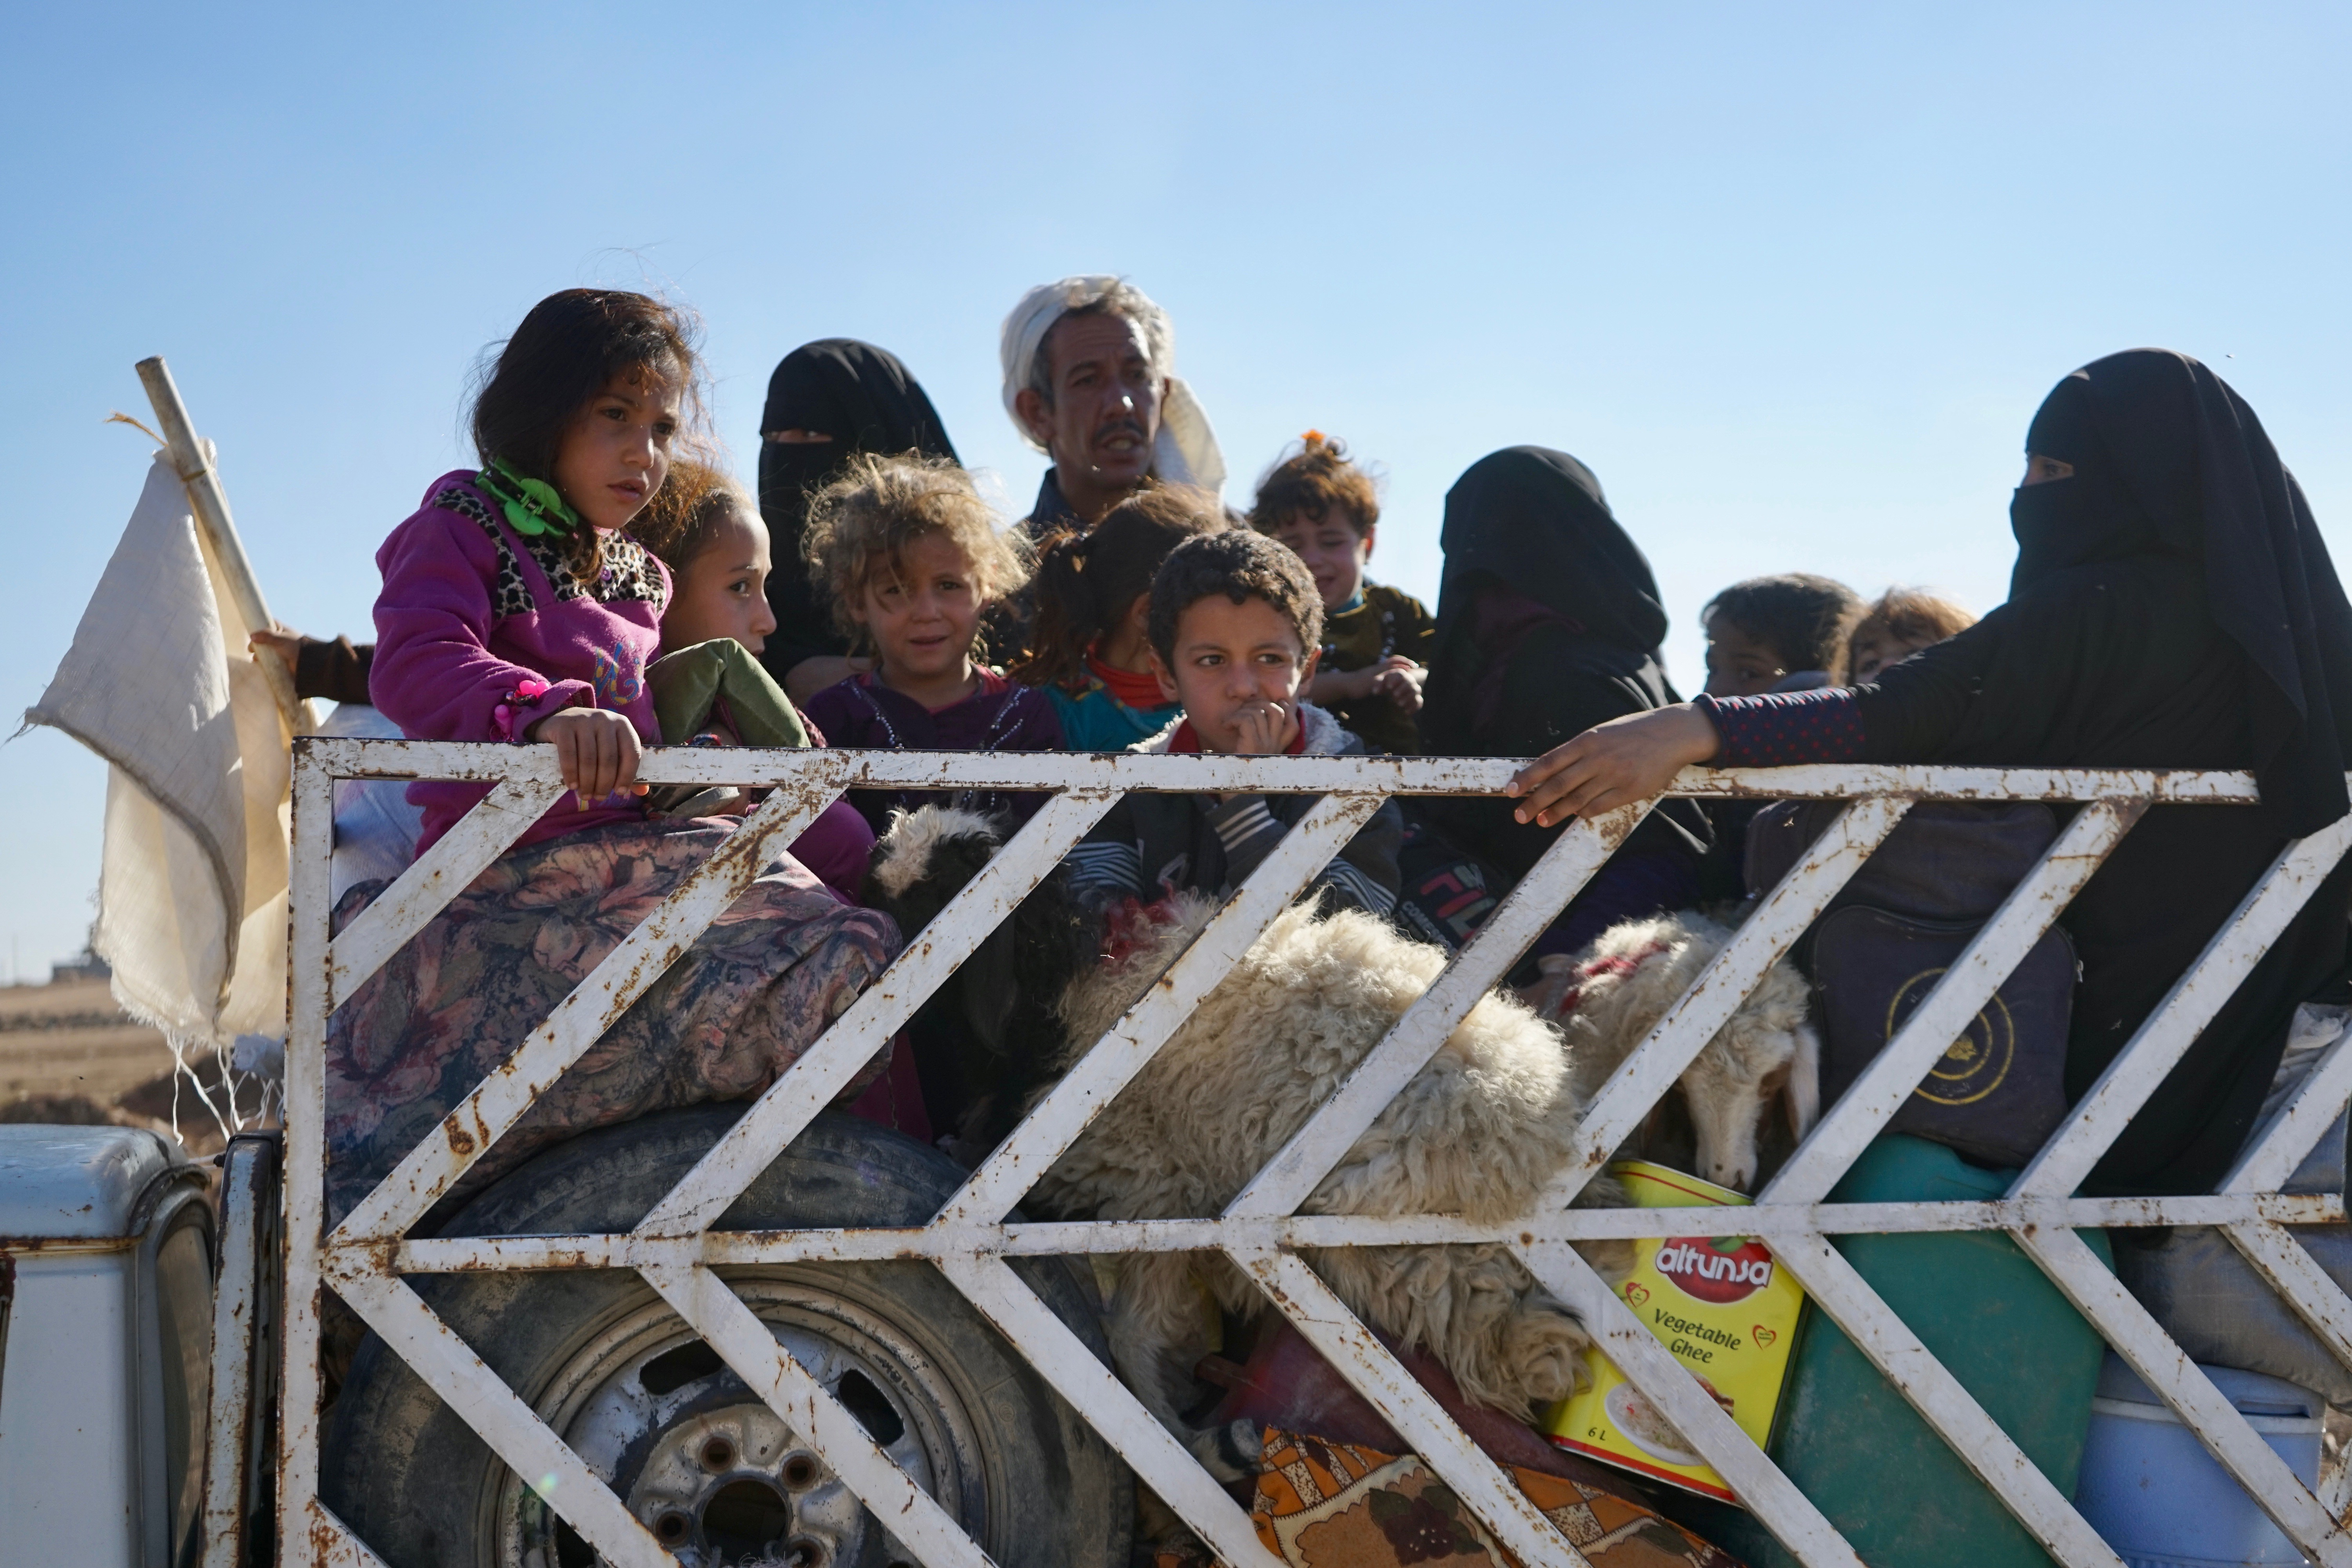 Taking what they can with them, civilians flee an inner suburb of Mosul, Nov. 3, 2016. (Photo: Jamie Dettmer for VOA)